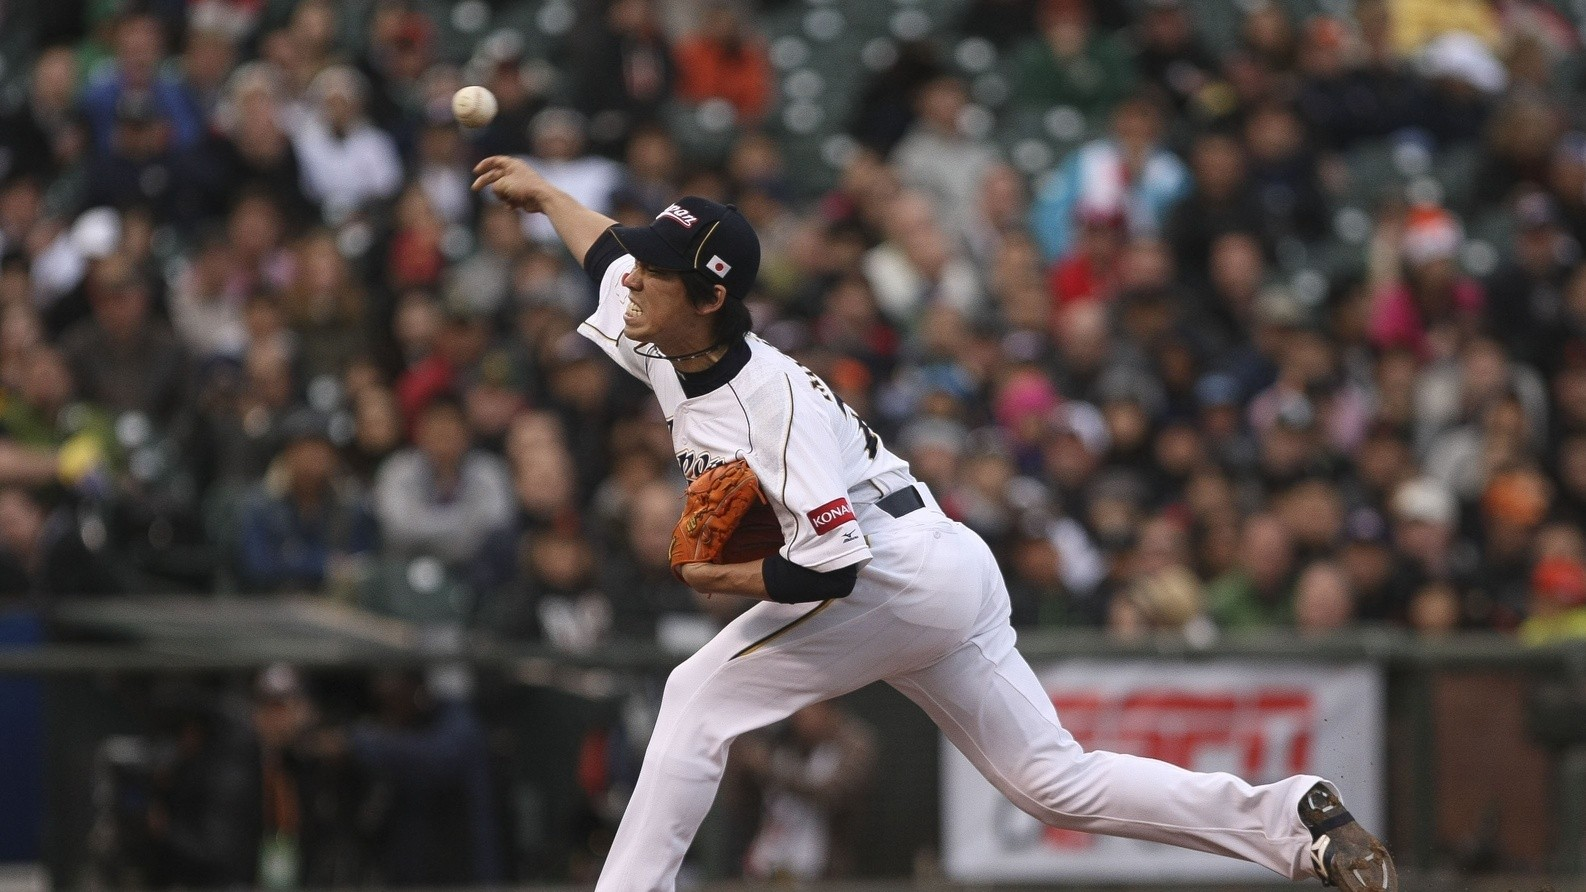 Kenta Maeda's Contract Is Bad News for Baseball Players